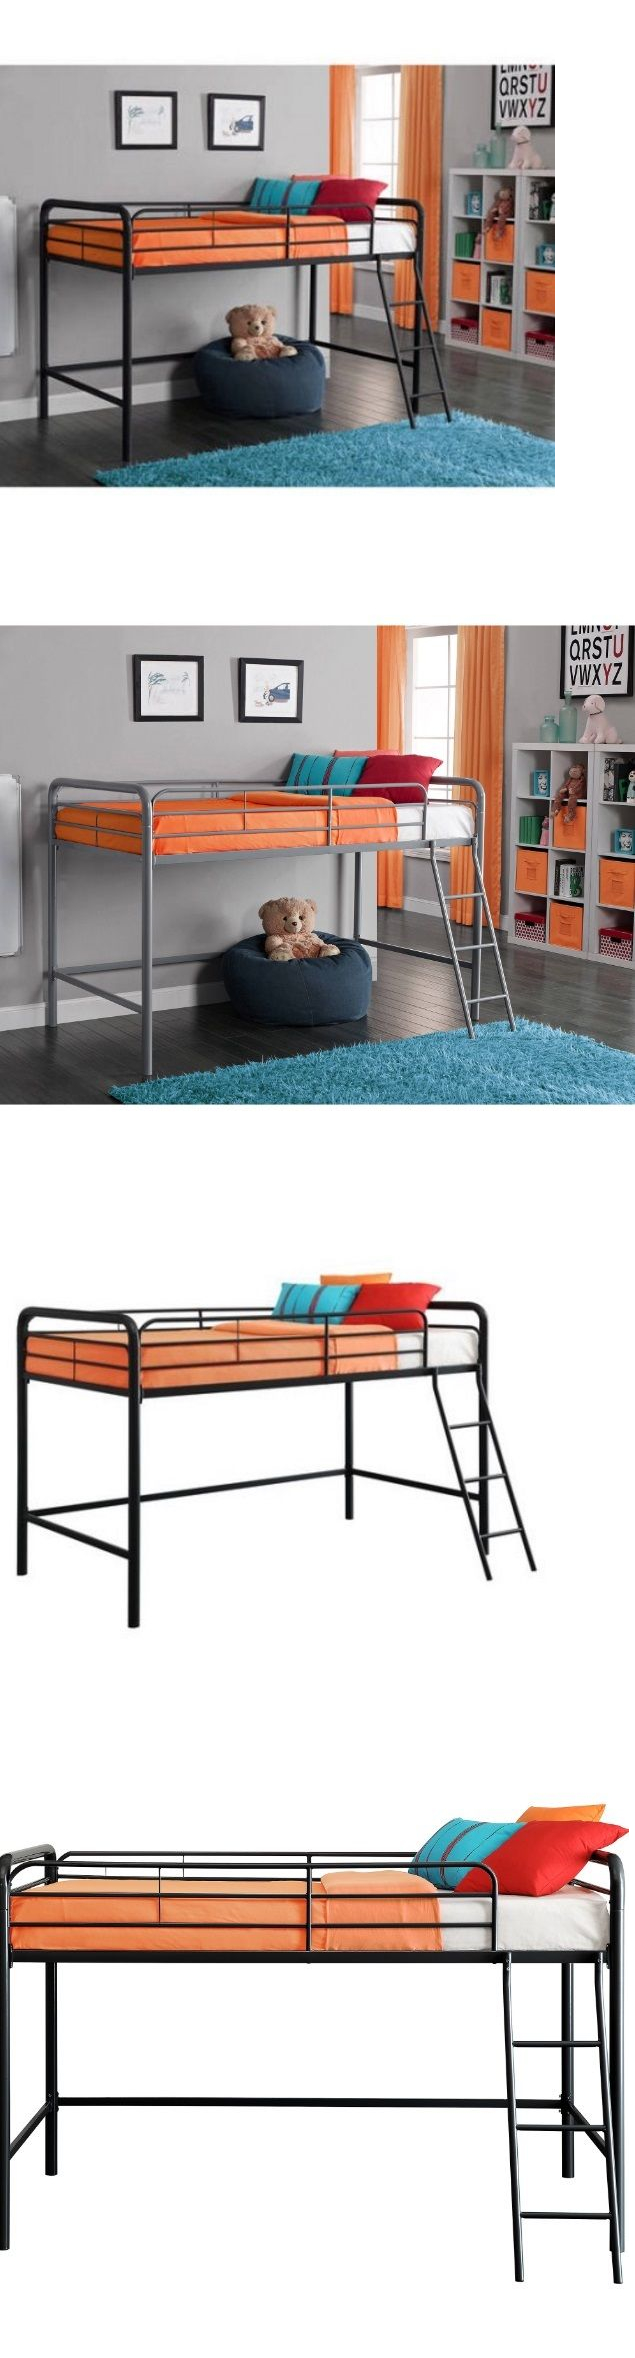 Loft bed with desk and chair  Kids Furniture Loft Twin Bunk Bed Metal Furniture Kids Bedroom